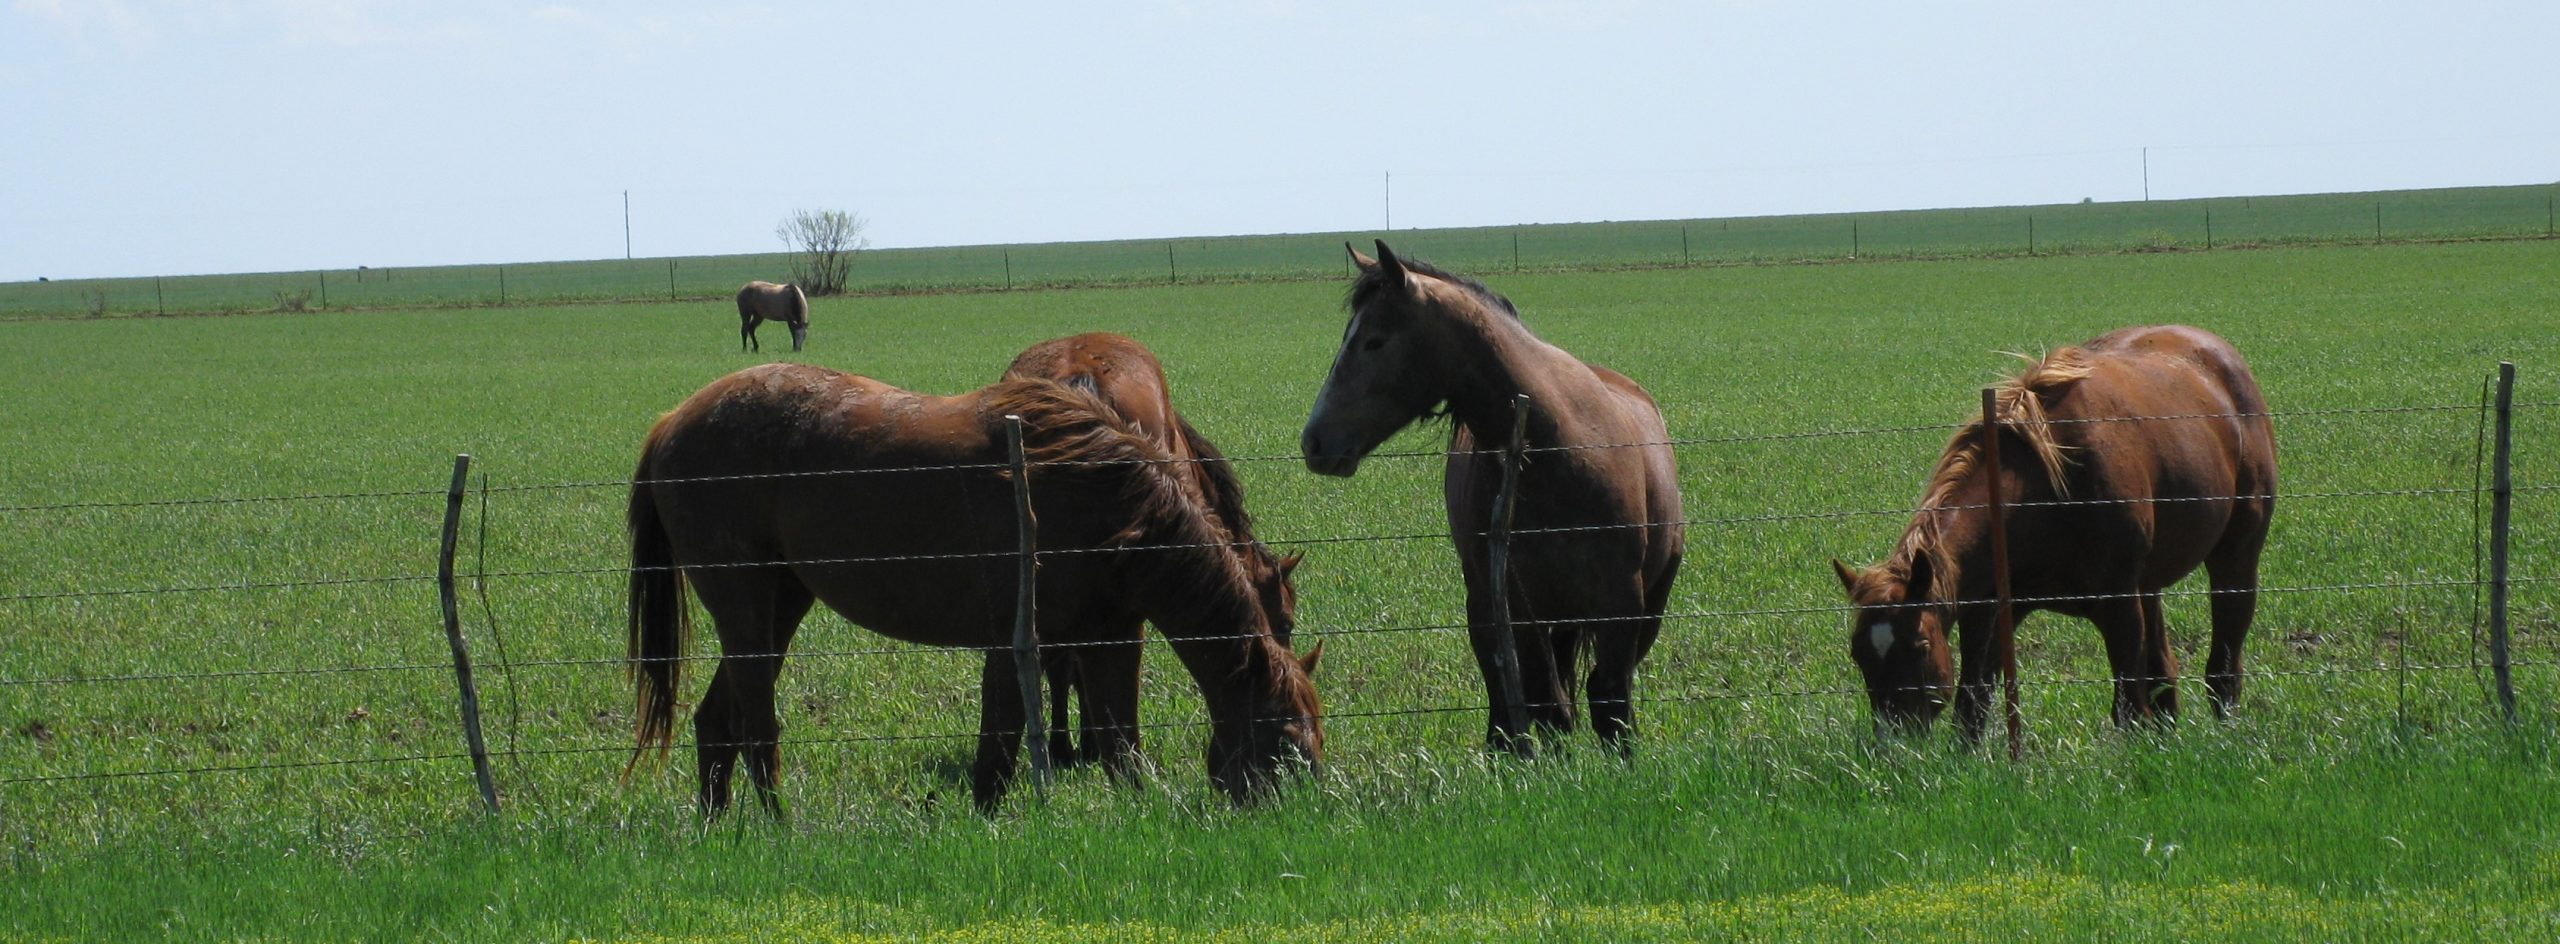 five horses in grass field